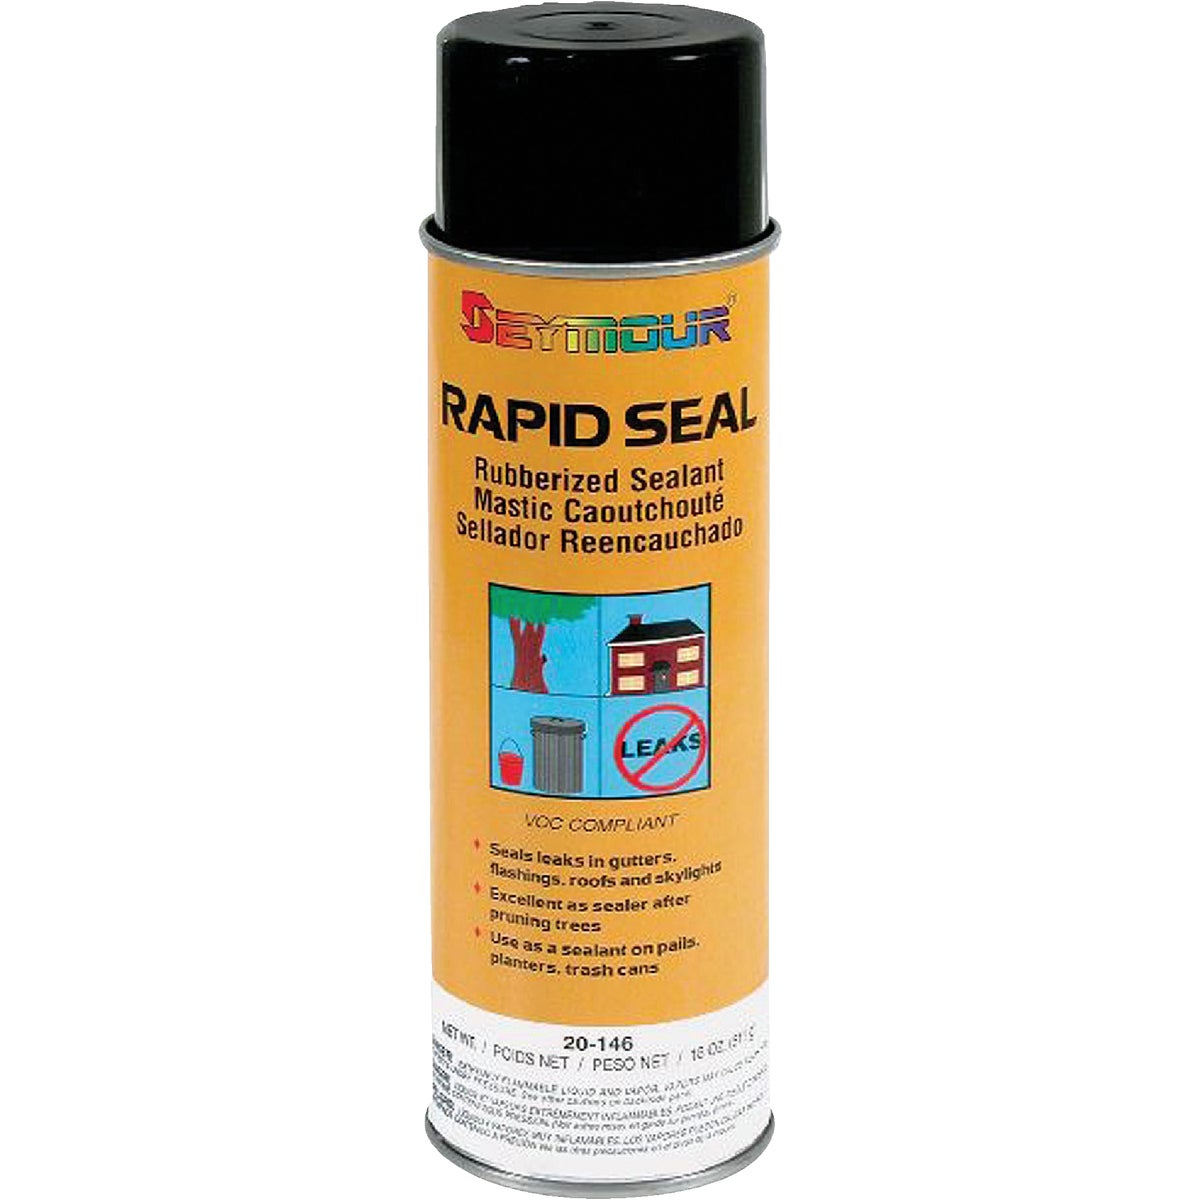 RUBBER SPRAY SEALANT - 20-146 by Seymour Of Sycamore